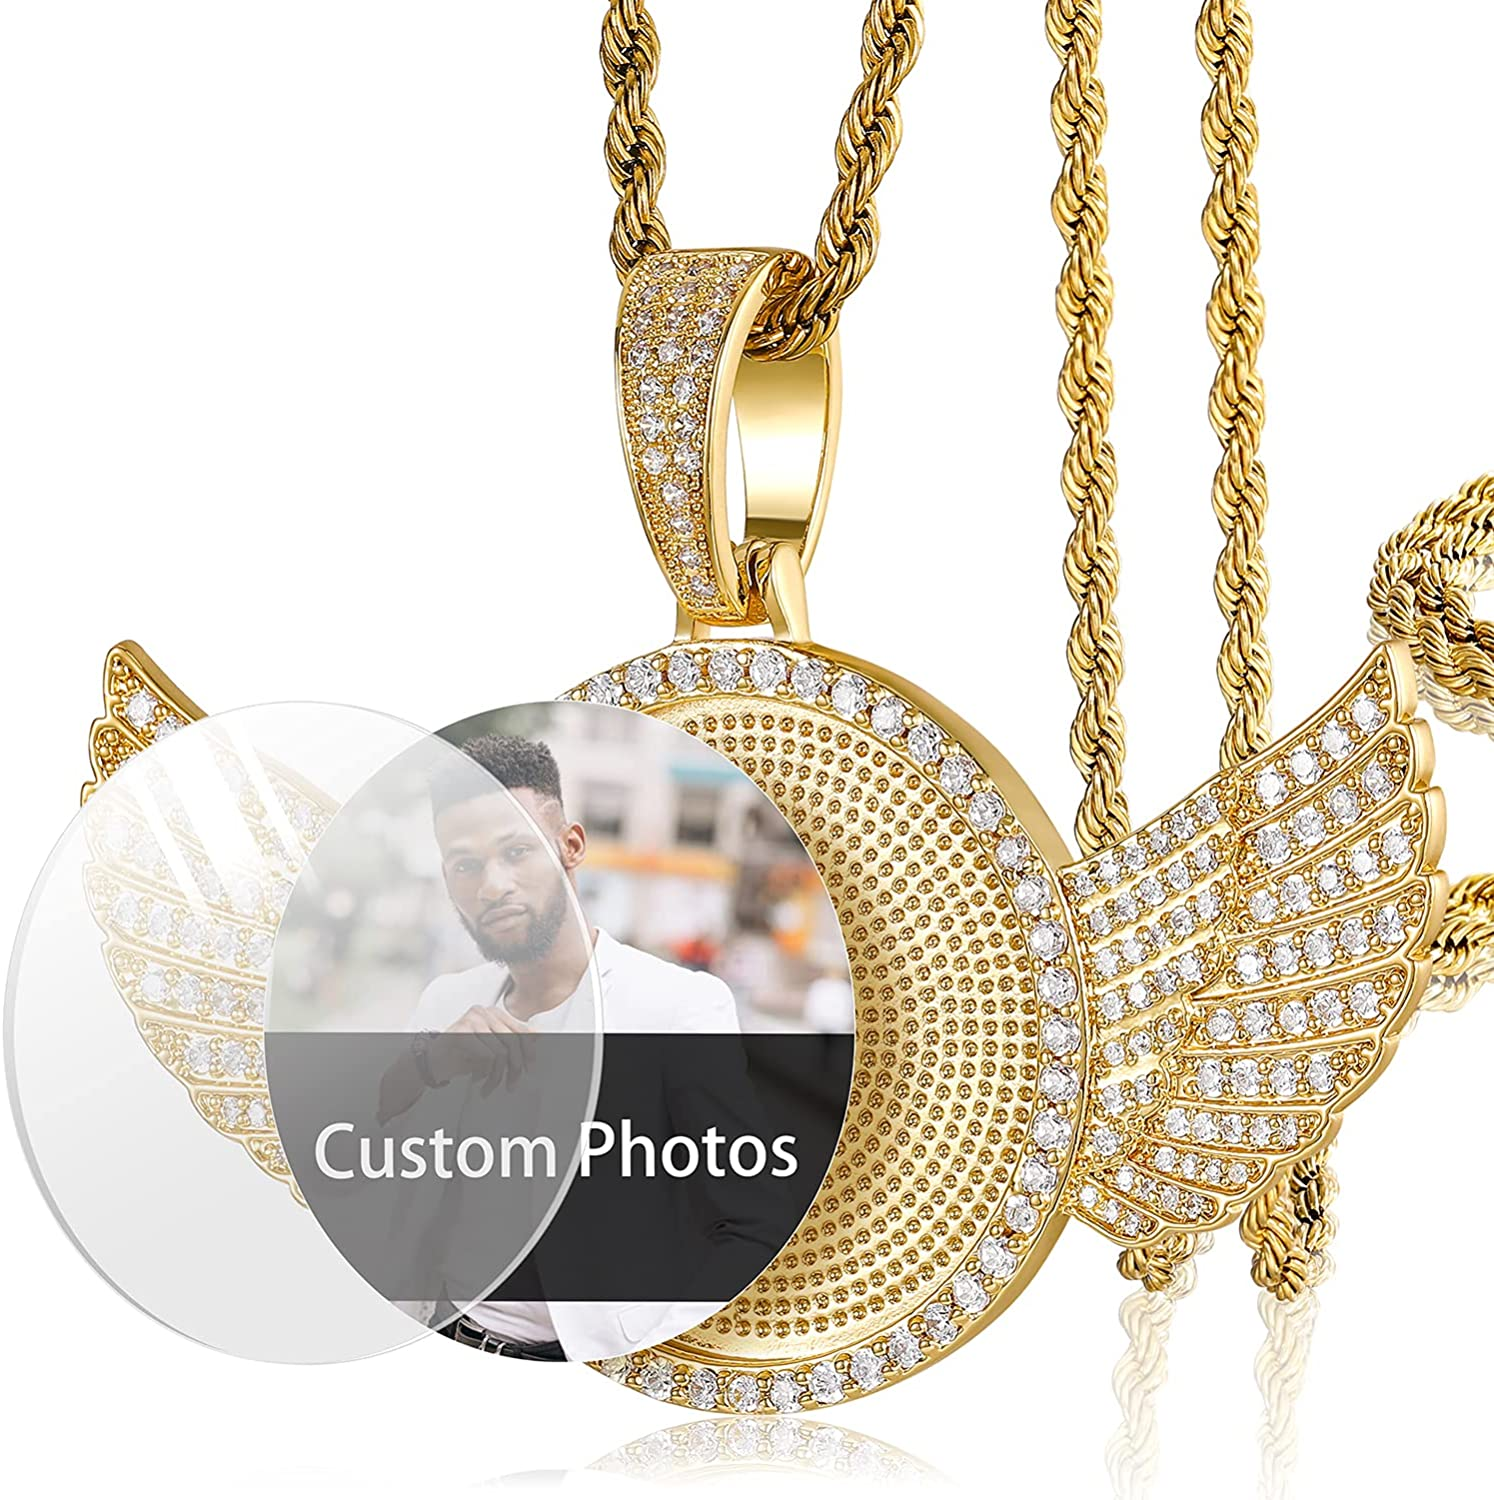 YIMERAIRE Photo Necklace Custom Photo Iced Out Round Angel Wings Pendant Necklace Rope Chain Necklace for Women with Pendant Hip Hop Gold Pendant Chain for Men